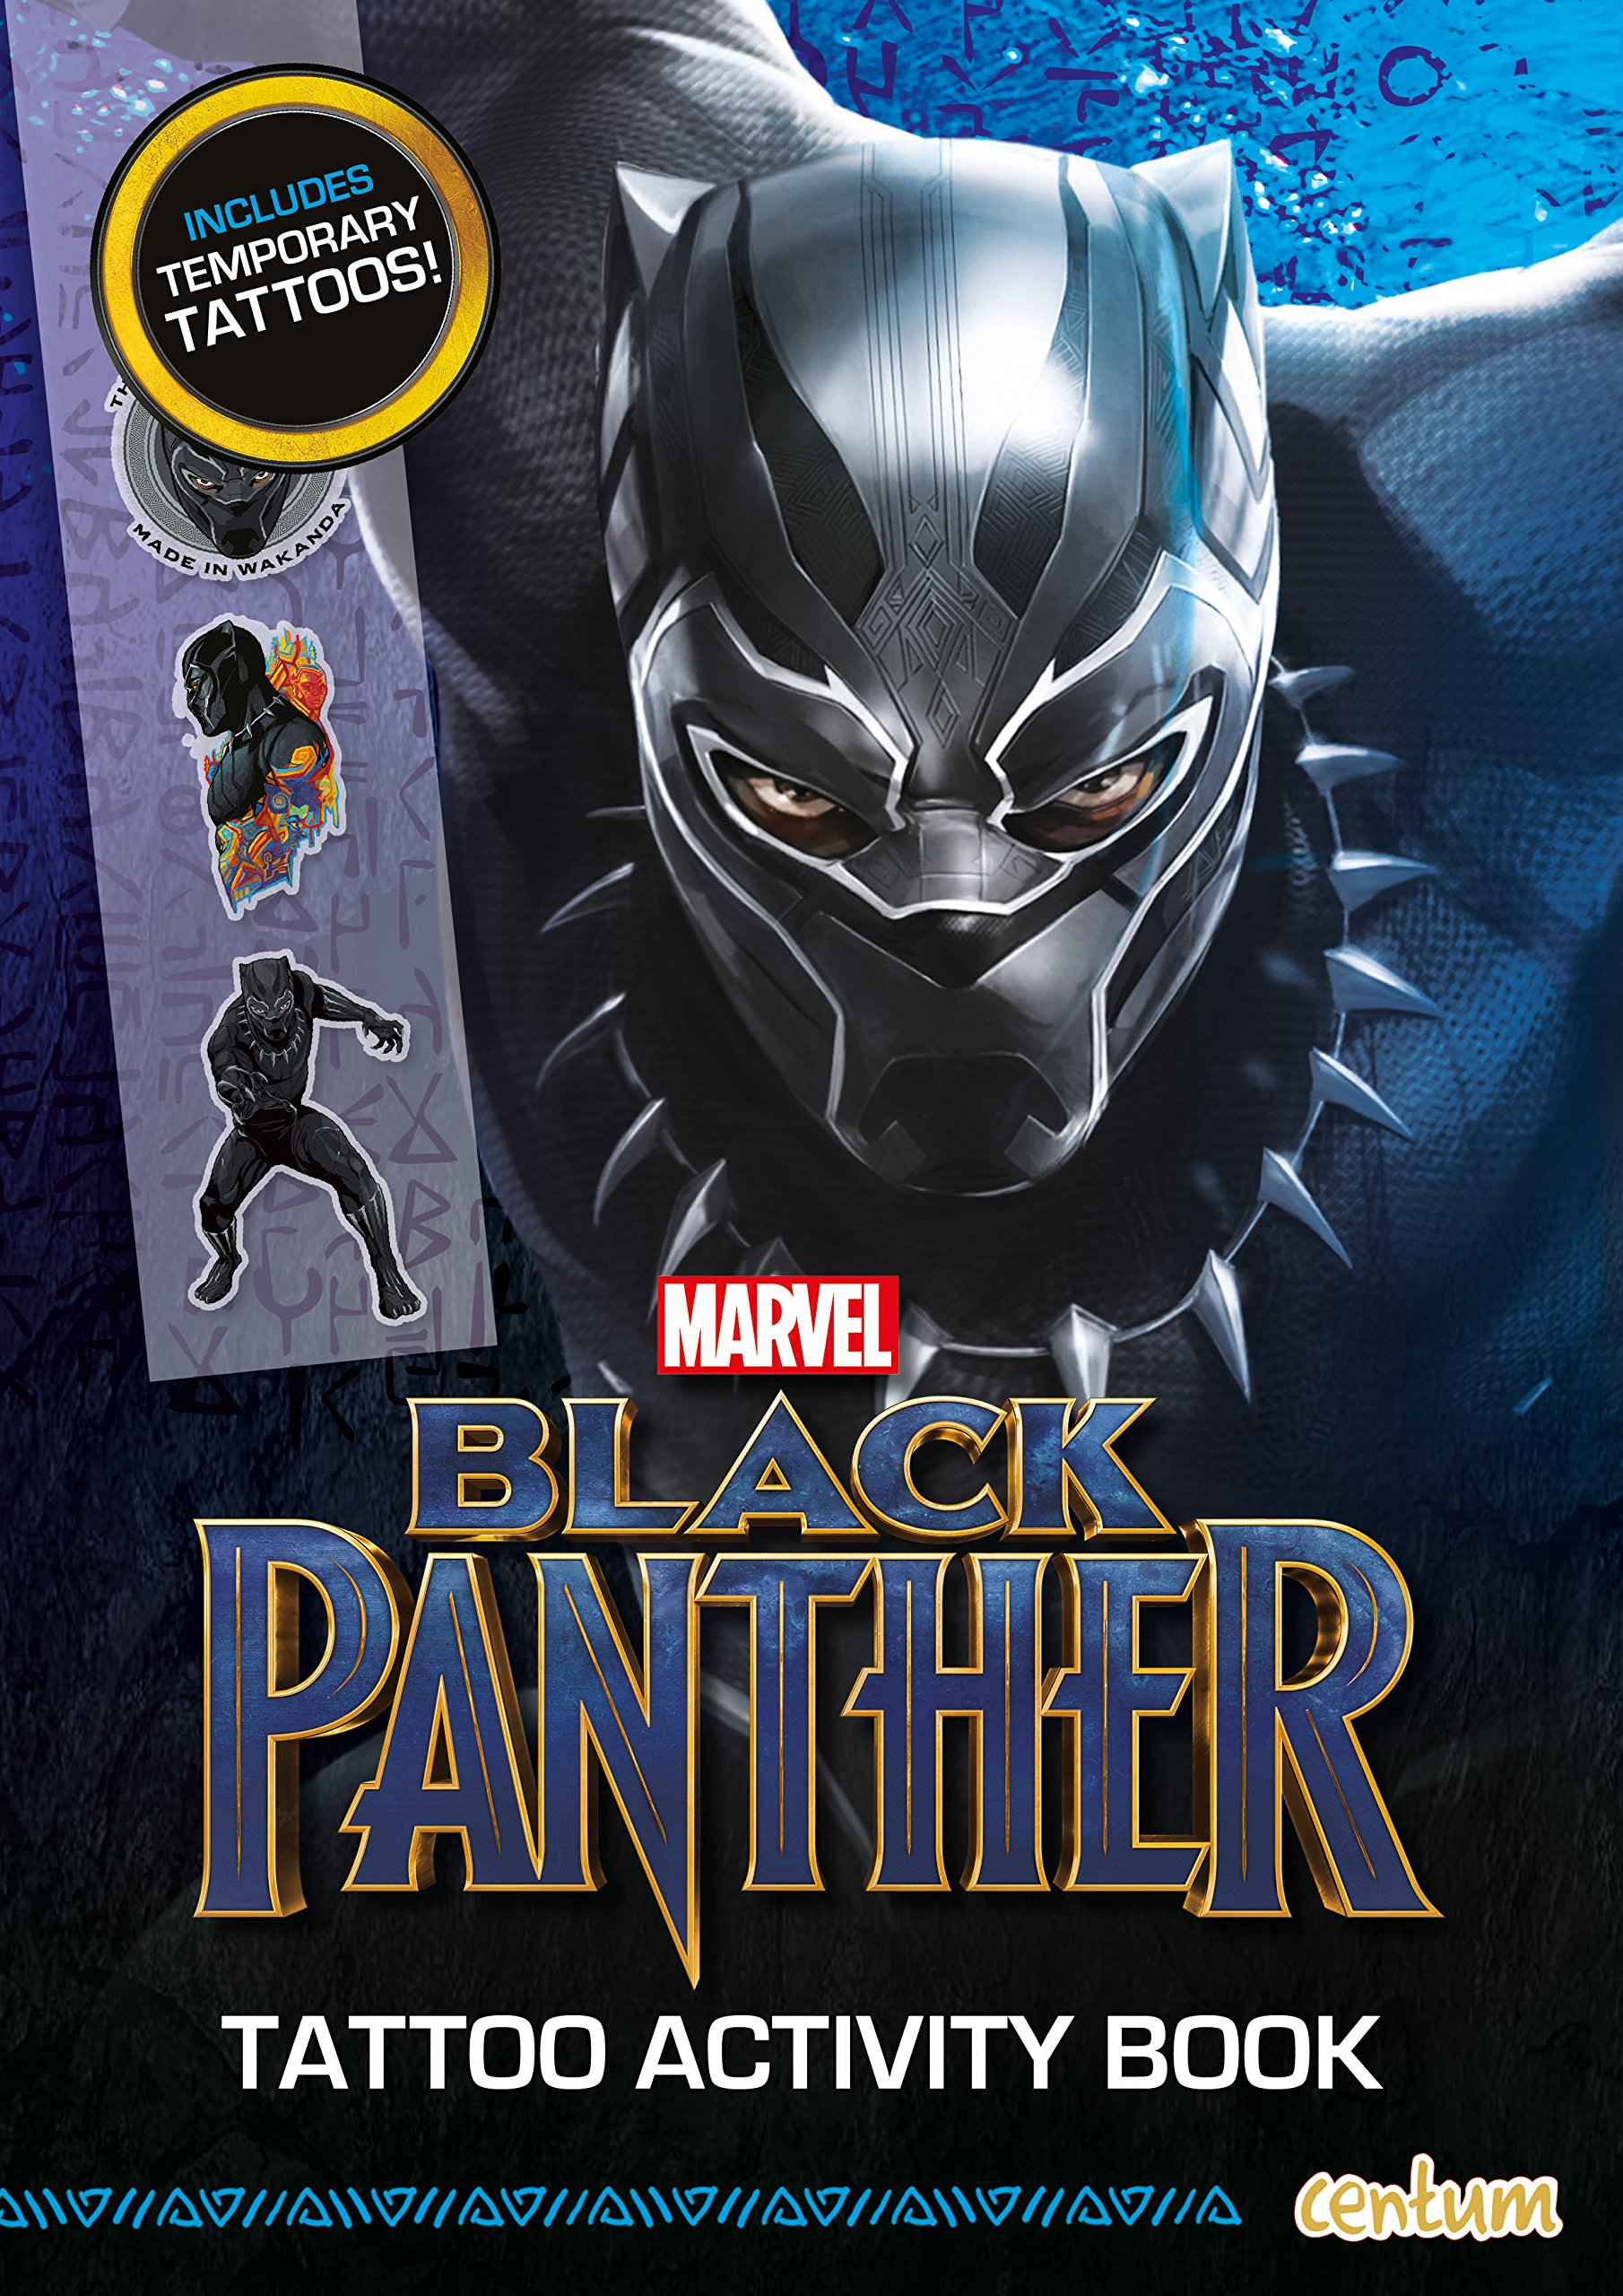 Black panther tattoo activity book paperback january 18 2018